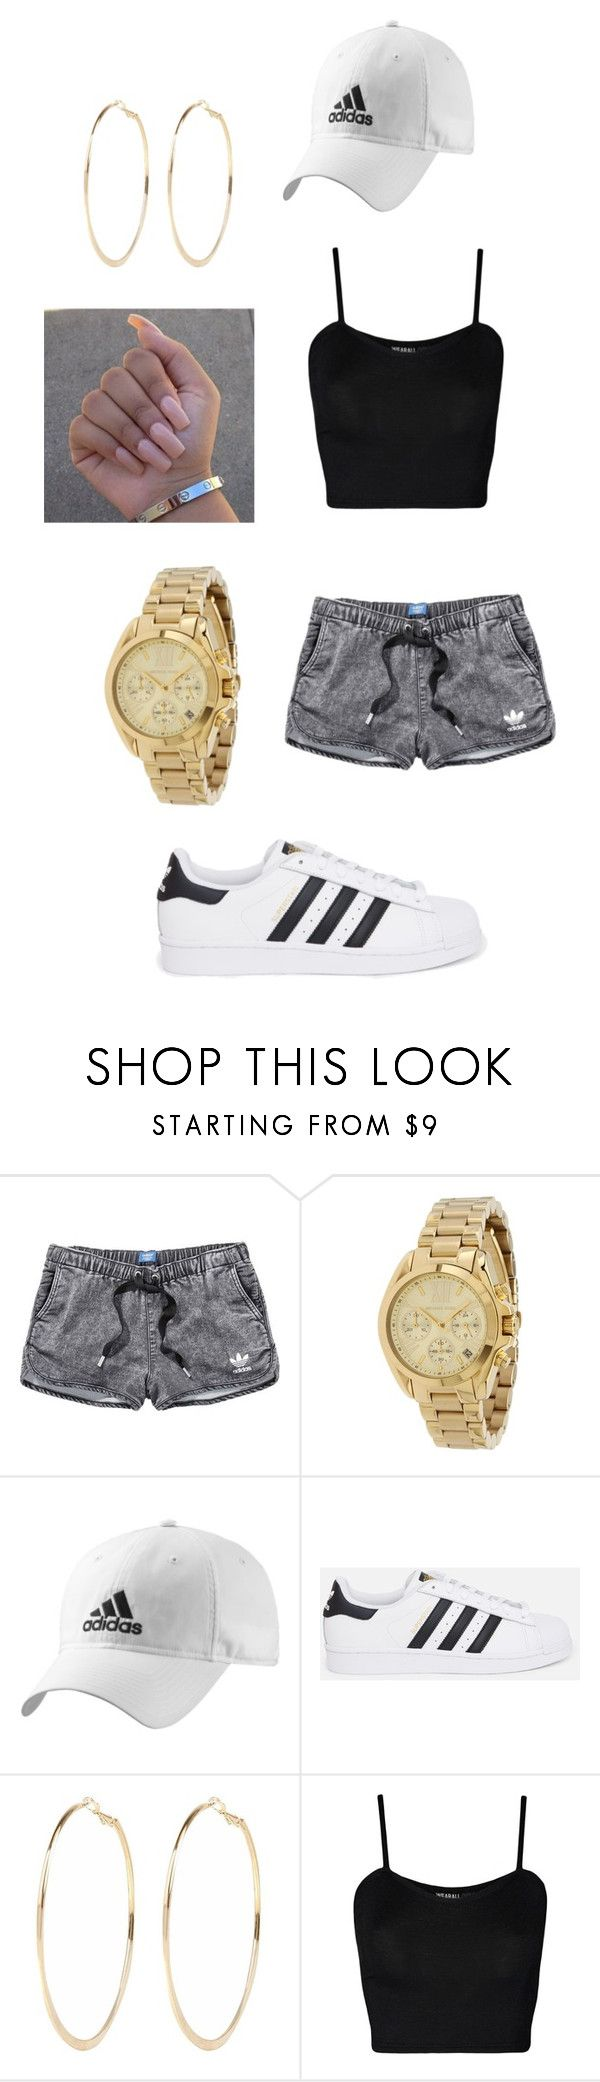 """""""Adidas"""" by vianamo on Polyvore featuring adidas, Michael Kors, adidas Originals, River Island and WearAll"""